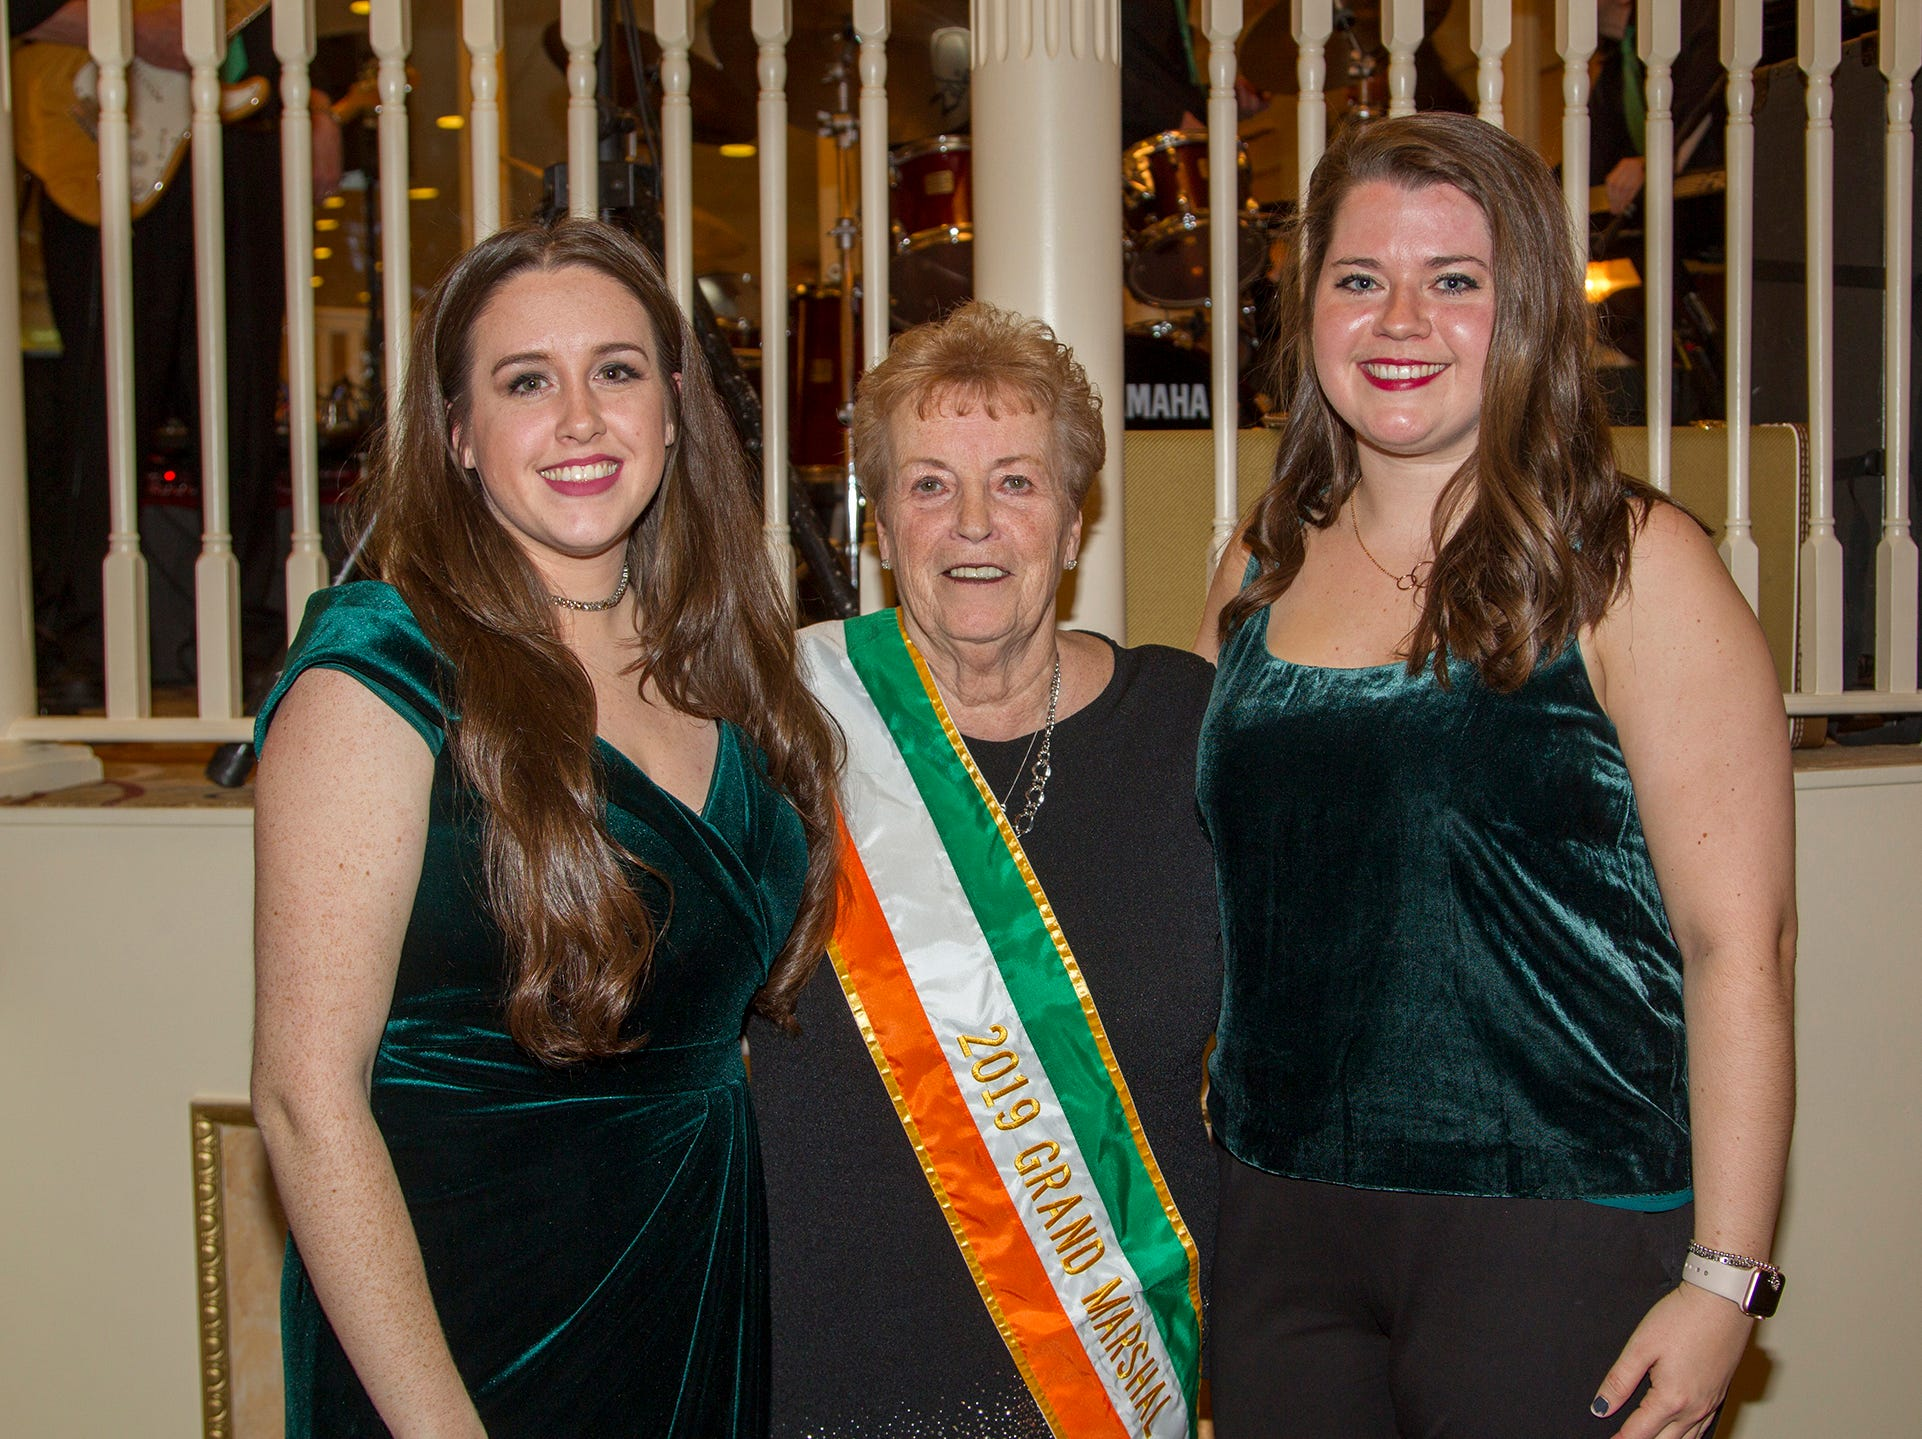 Mairead Early, Patricia McLoughlin, Shannon Corrigan. 38th Annual St. Patrick's Day parade Installation Dance at The Graycliff in Moonachie. 2/23/2019